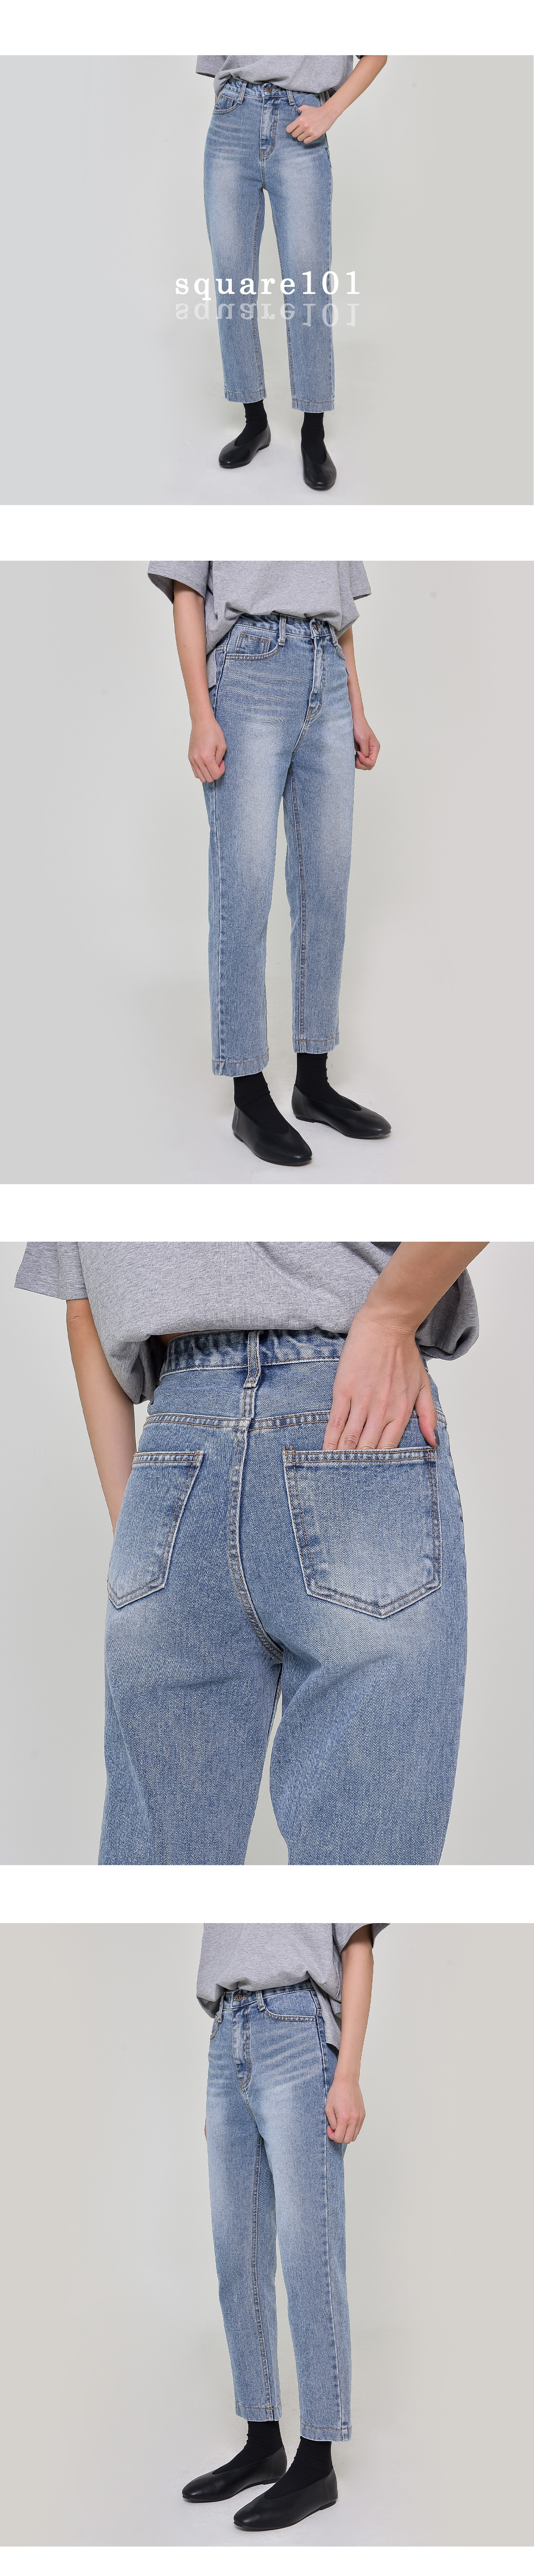 Ent slim trousers